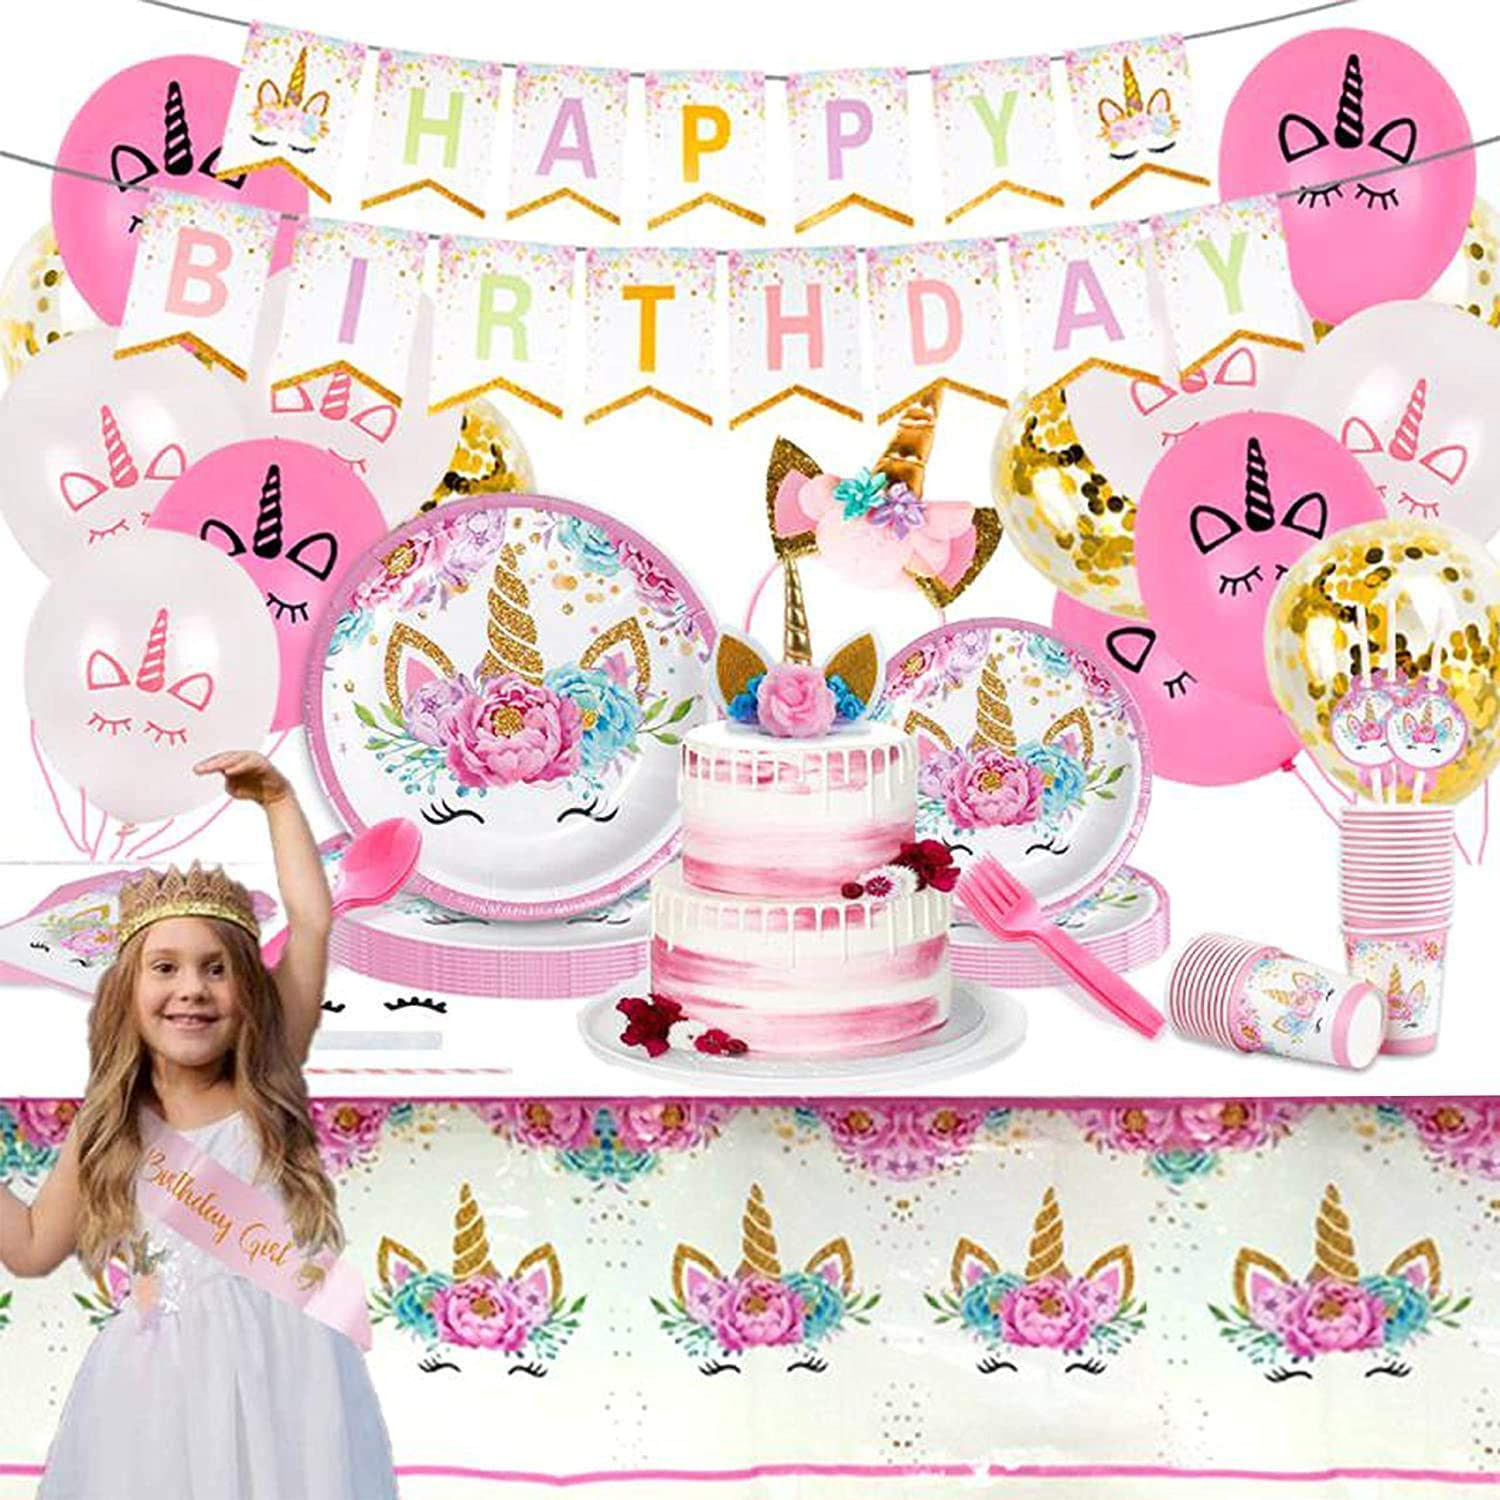 Value Smash Unicorn Party Supplies 16 guests for girls with Birthday Banner, Unicorn Cake Topper, Headband & Sash, Dinning & Dessert plates, Tablecloth, Cups, Forks & Spoons Set, 15 balloons